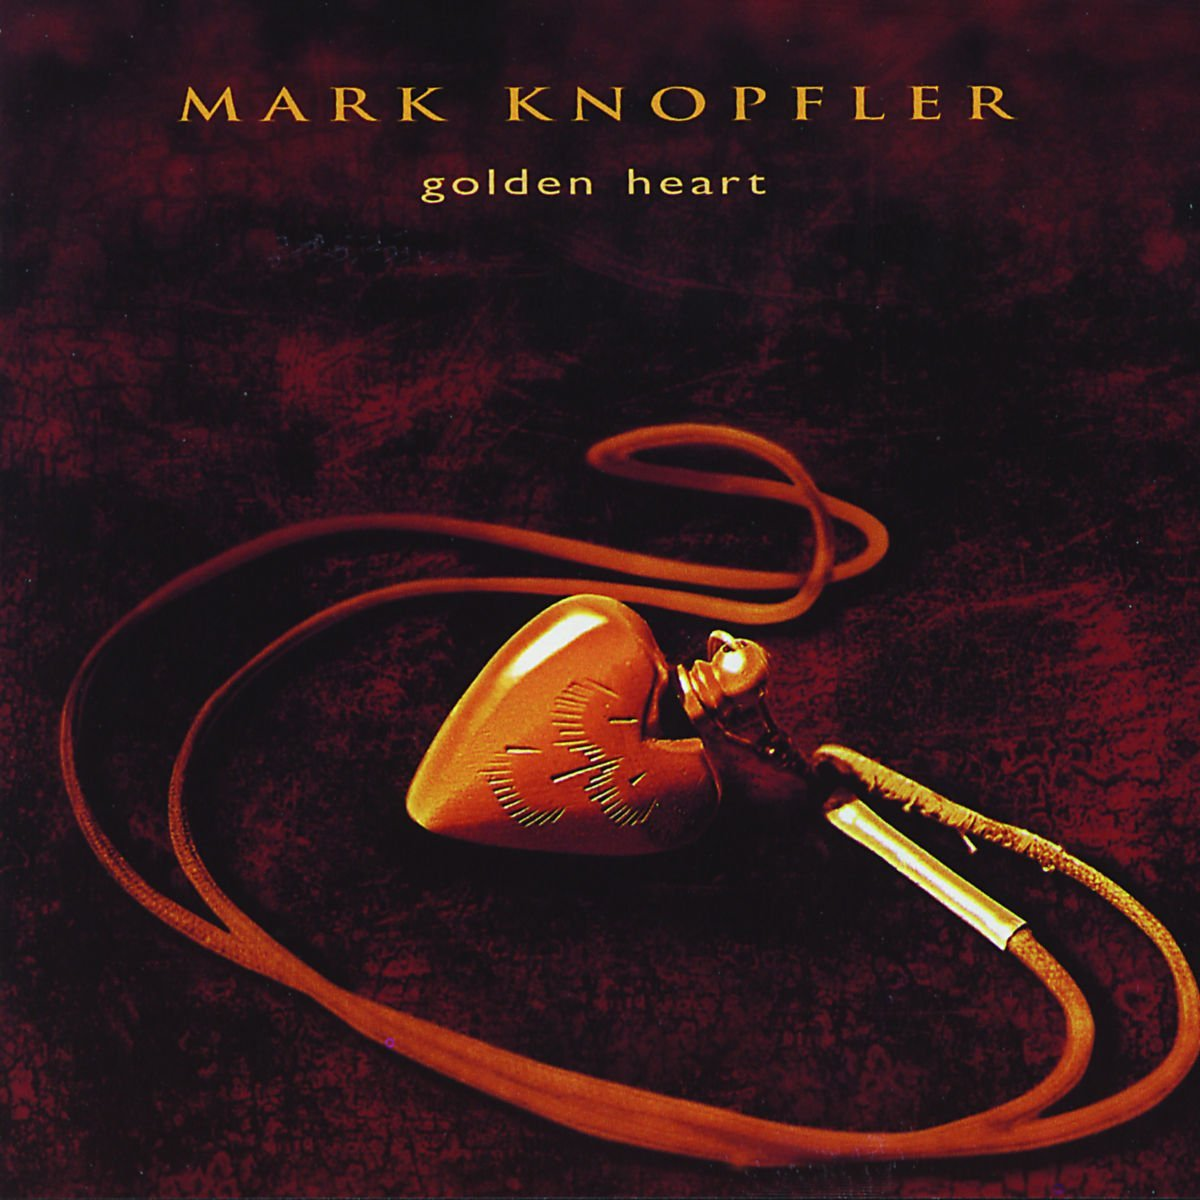 Mark Knopfler - Golden Heart (1996)